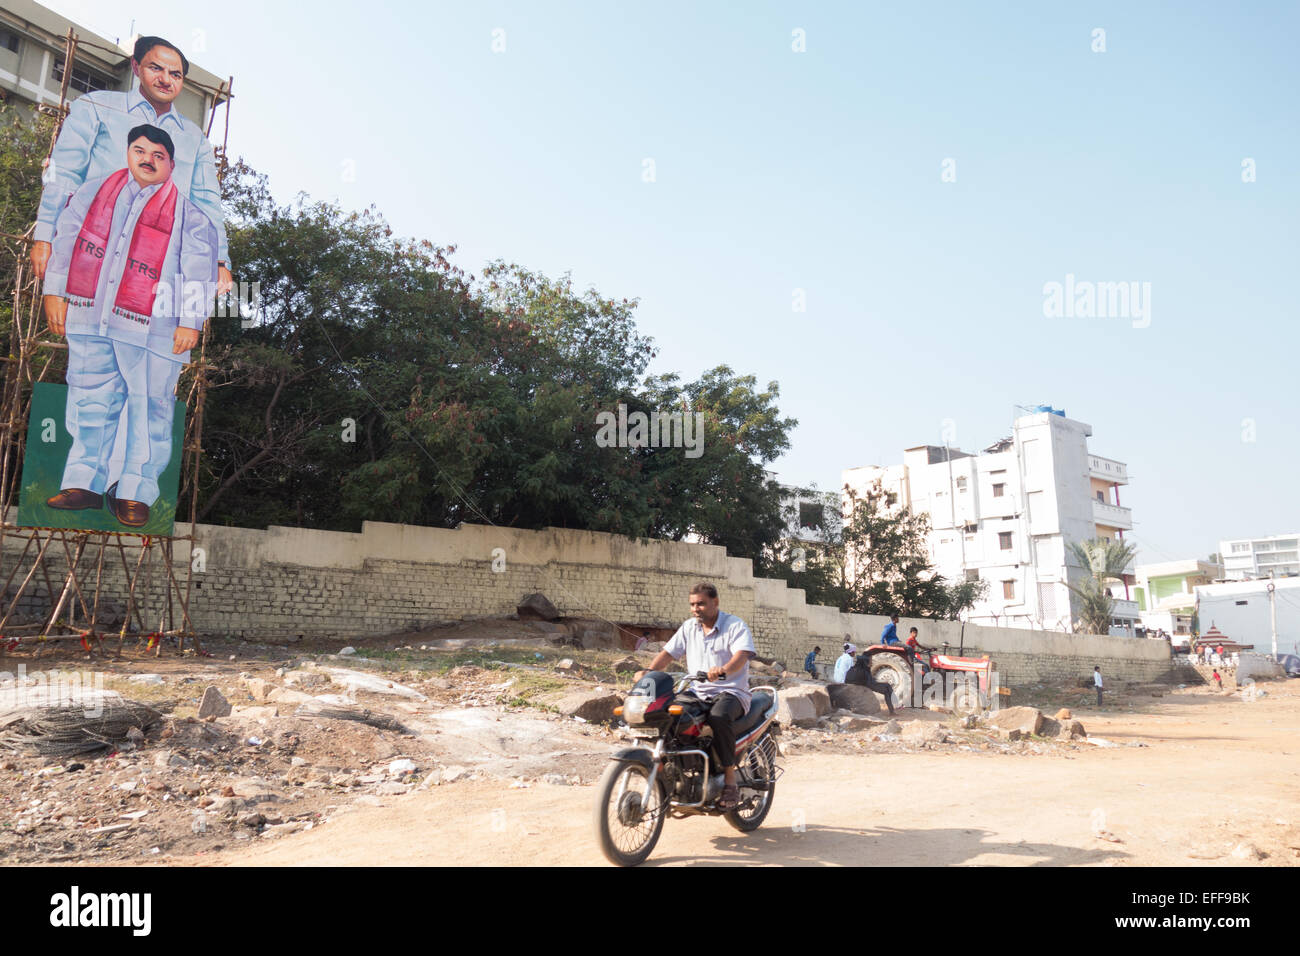 An Indian rides past a huge hoarding of Telangana Chief Minister K Chandra Sekhar popularly known as KCR in Hyderabad,Indian - Stock Image